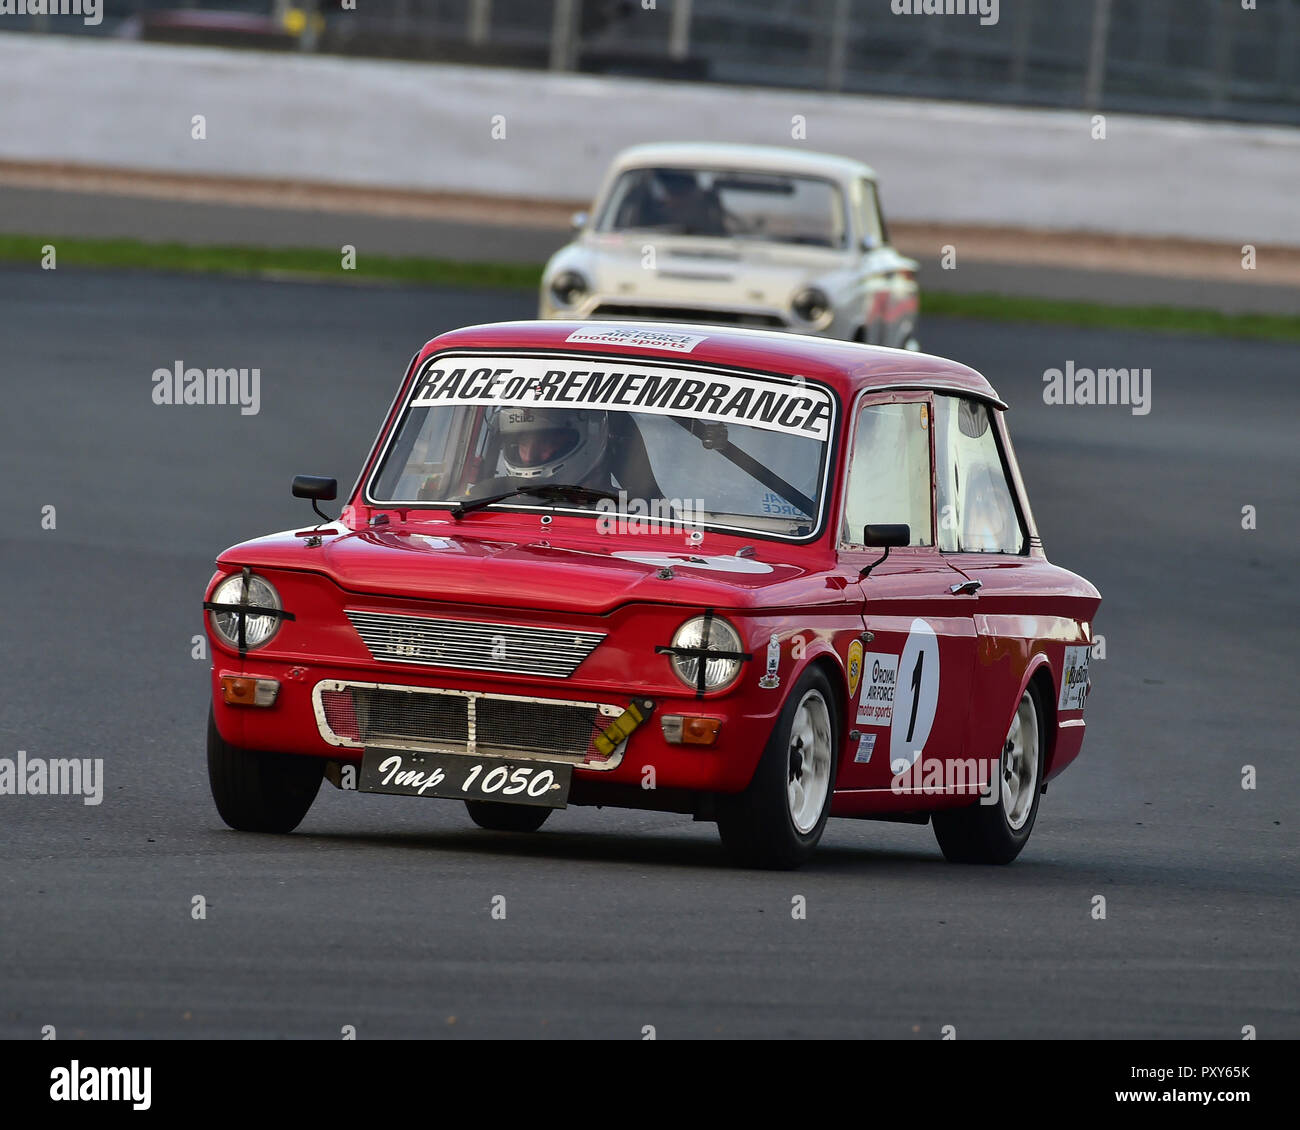 Steve Platts, Singer Chamois, HSCC, HRSR, Historic Touring Cars, Silverstone Finals Historic Race Meeting, Silverstone, October 2018, cars, Classic Ra - Stock Image